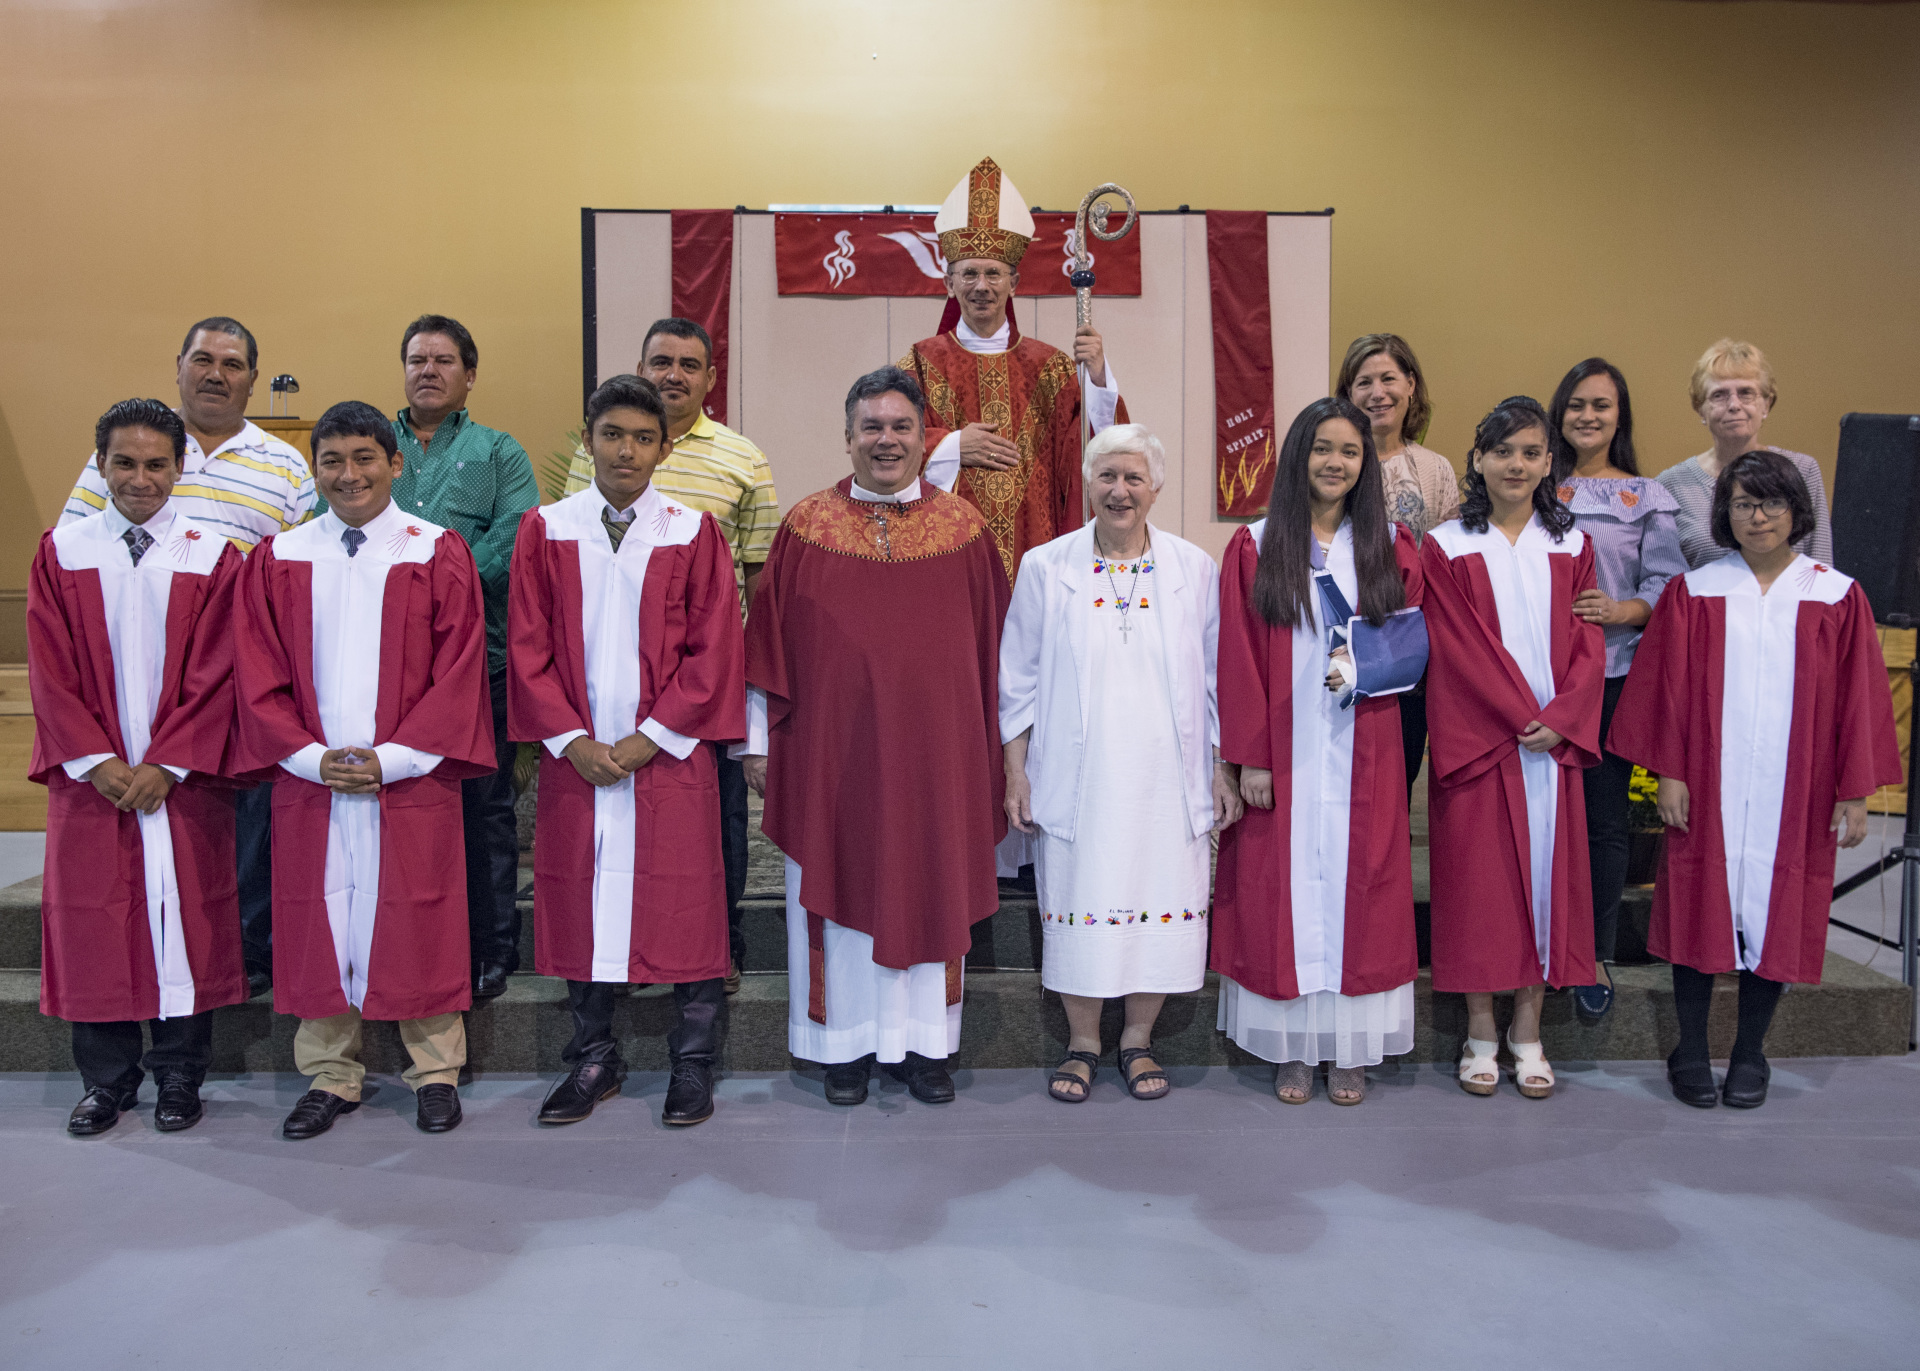 Bishop Jugis and the Confirmation Class